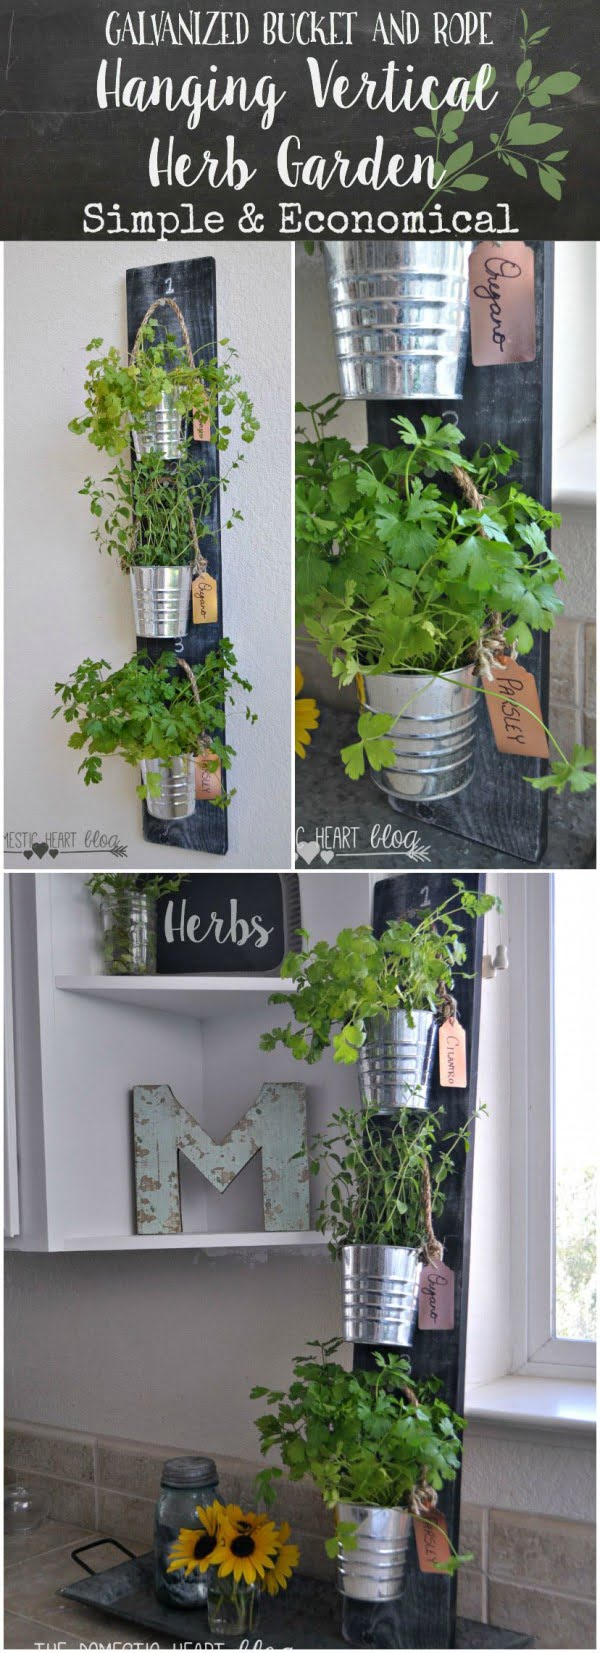 How to build a DIY hanging vertical herb garden form galvanized buckets and rope